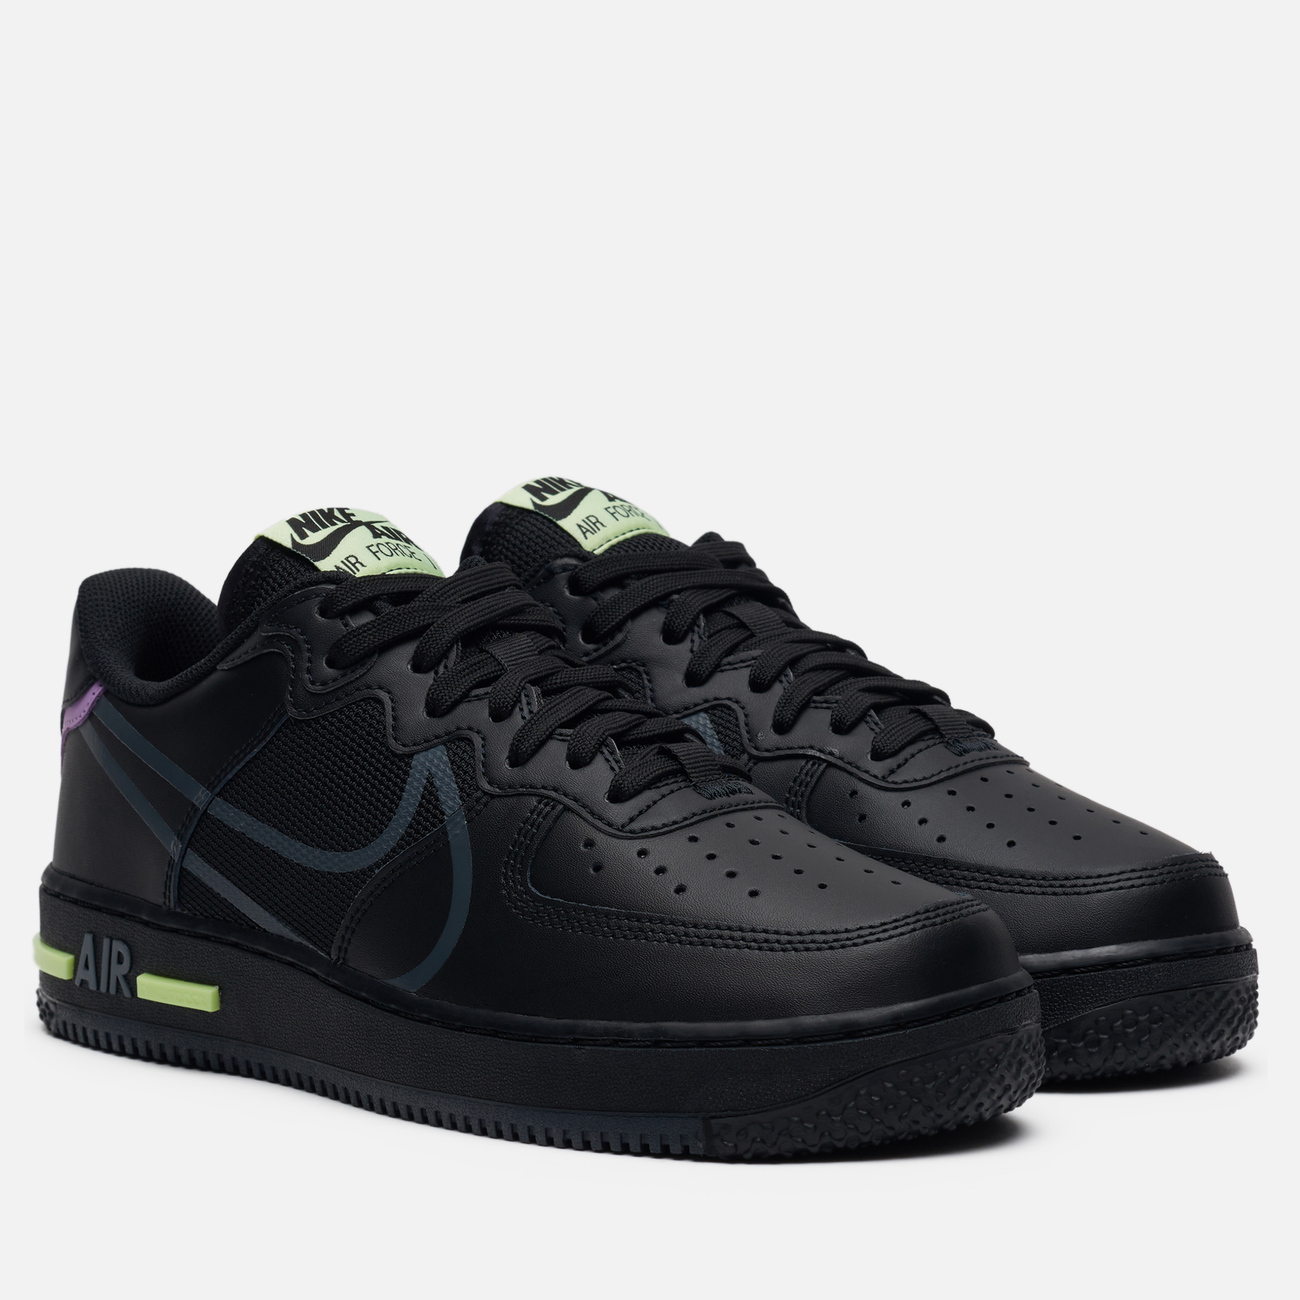 Кроссовки Nike Air Force 1 React Black/Anthracite/Violet Star/Barely Volt